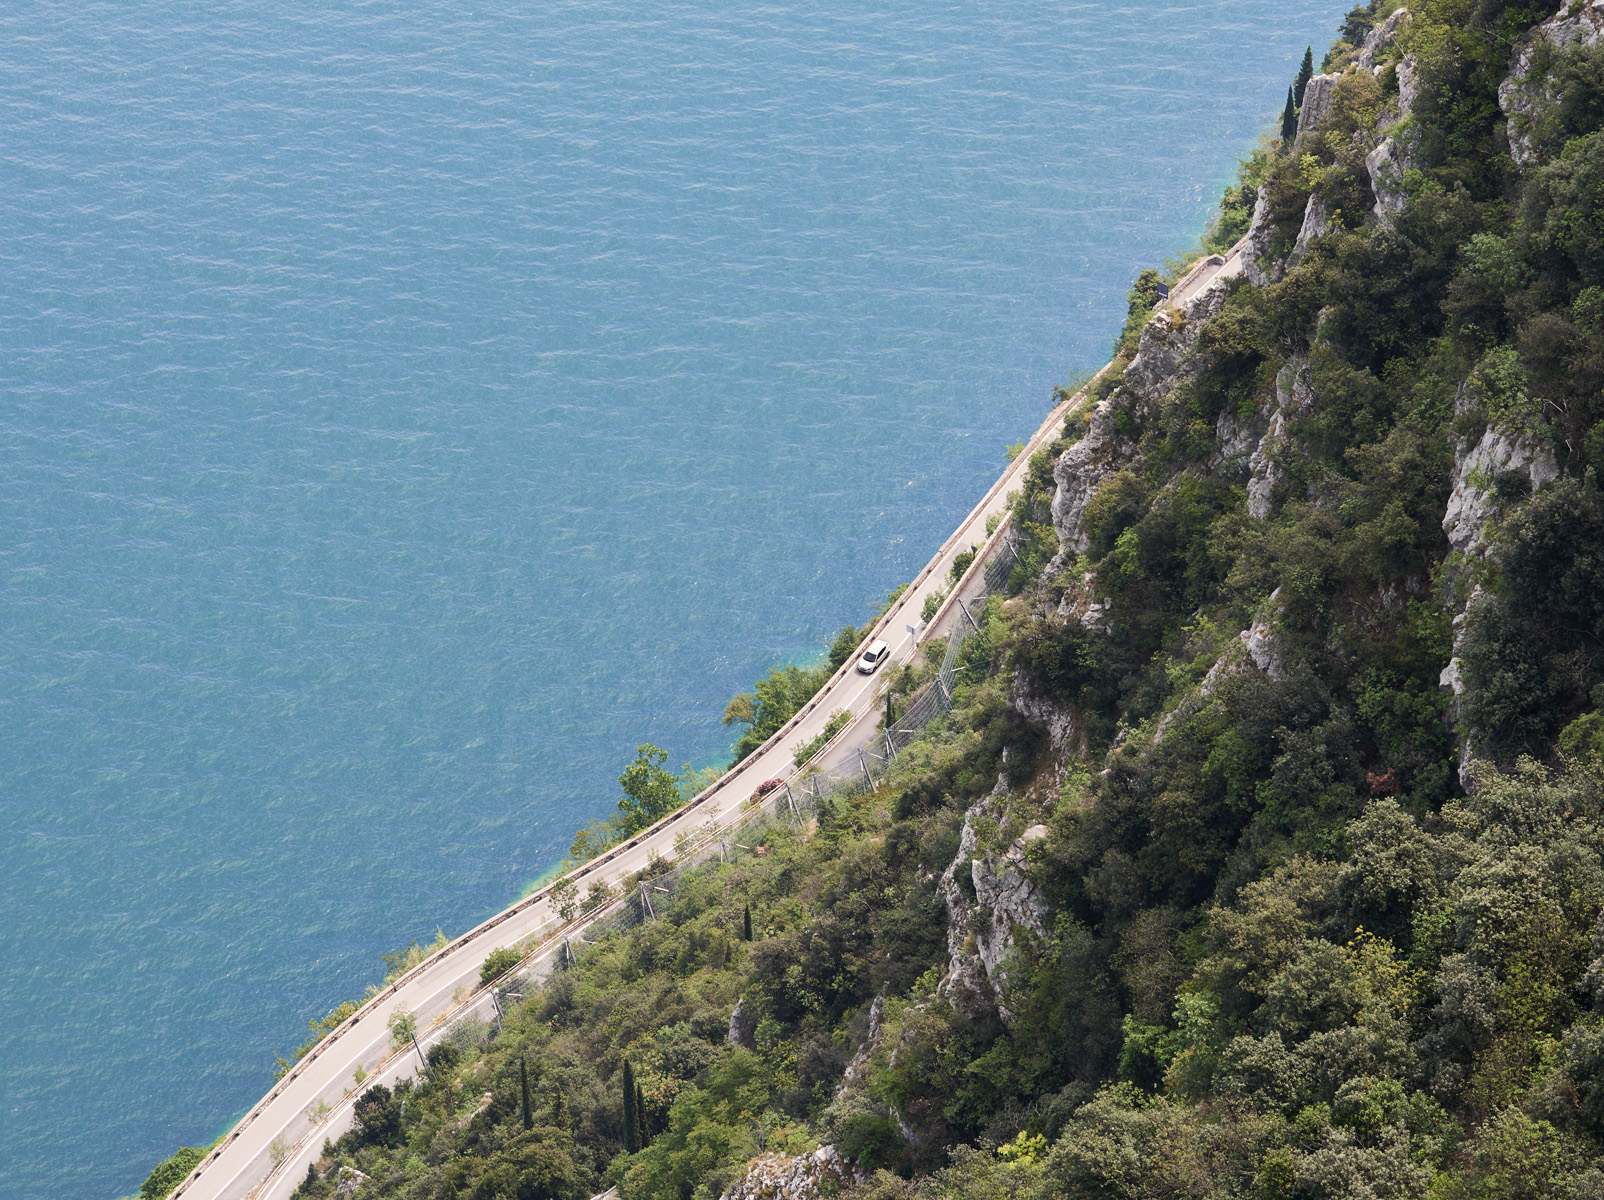 Areil view of a car driving alongside Lake Garda, Italy. Kirsty Owen Photography.